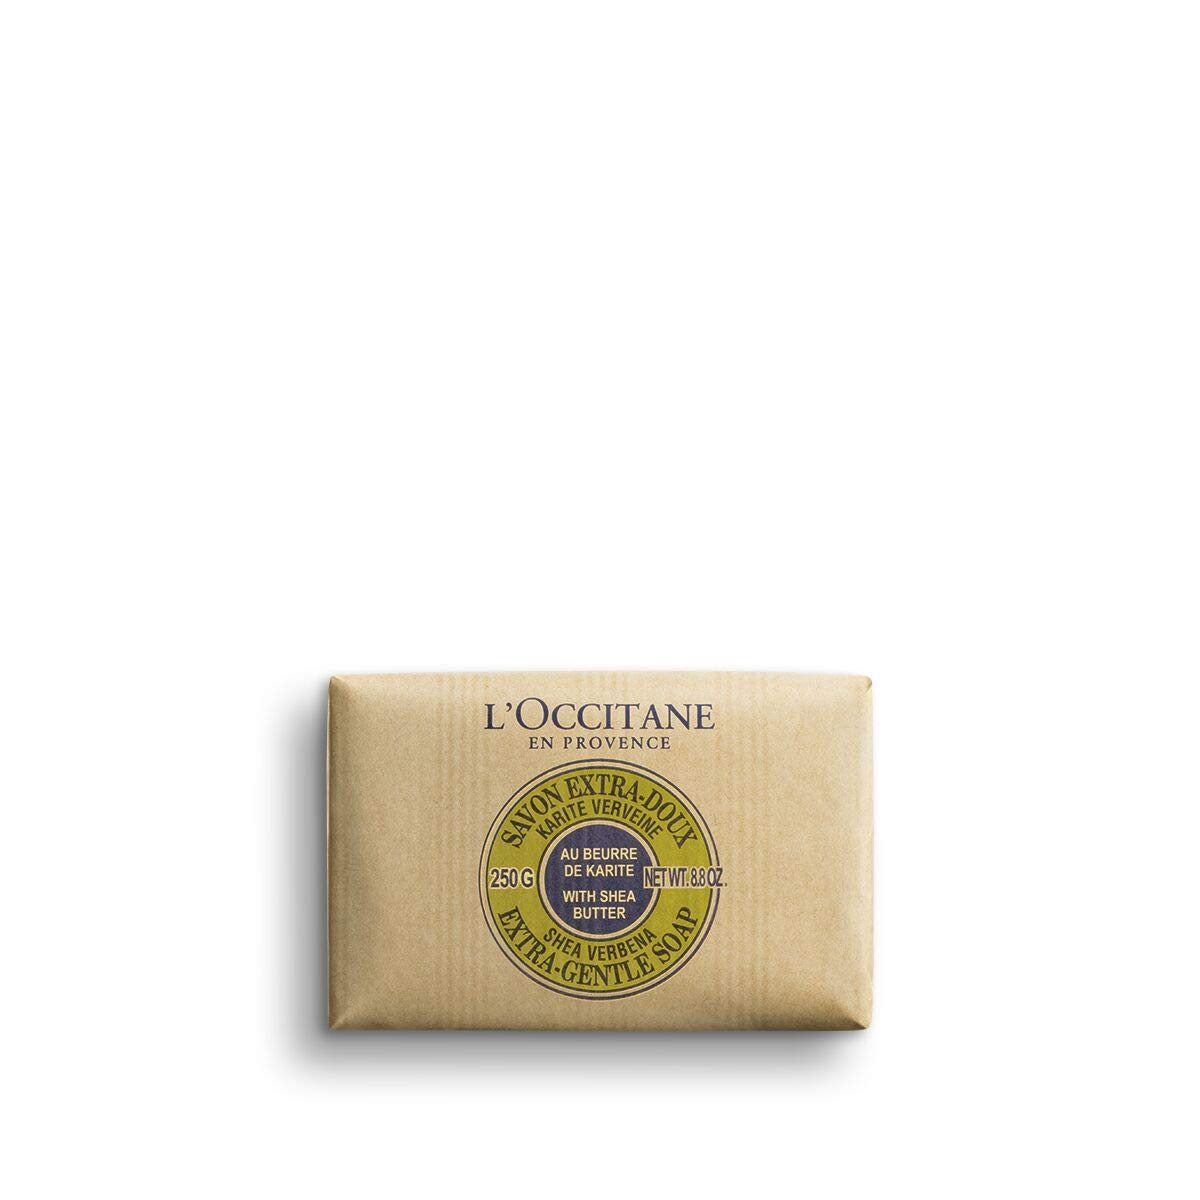 L'Occitane Extra-Gentle Vegetable Based Soap Enriched with Shea Butter - Verbena, Net Wt. 8.8 oz. by L'Occitane